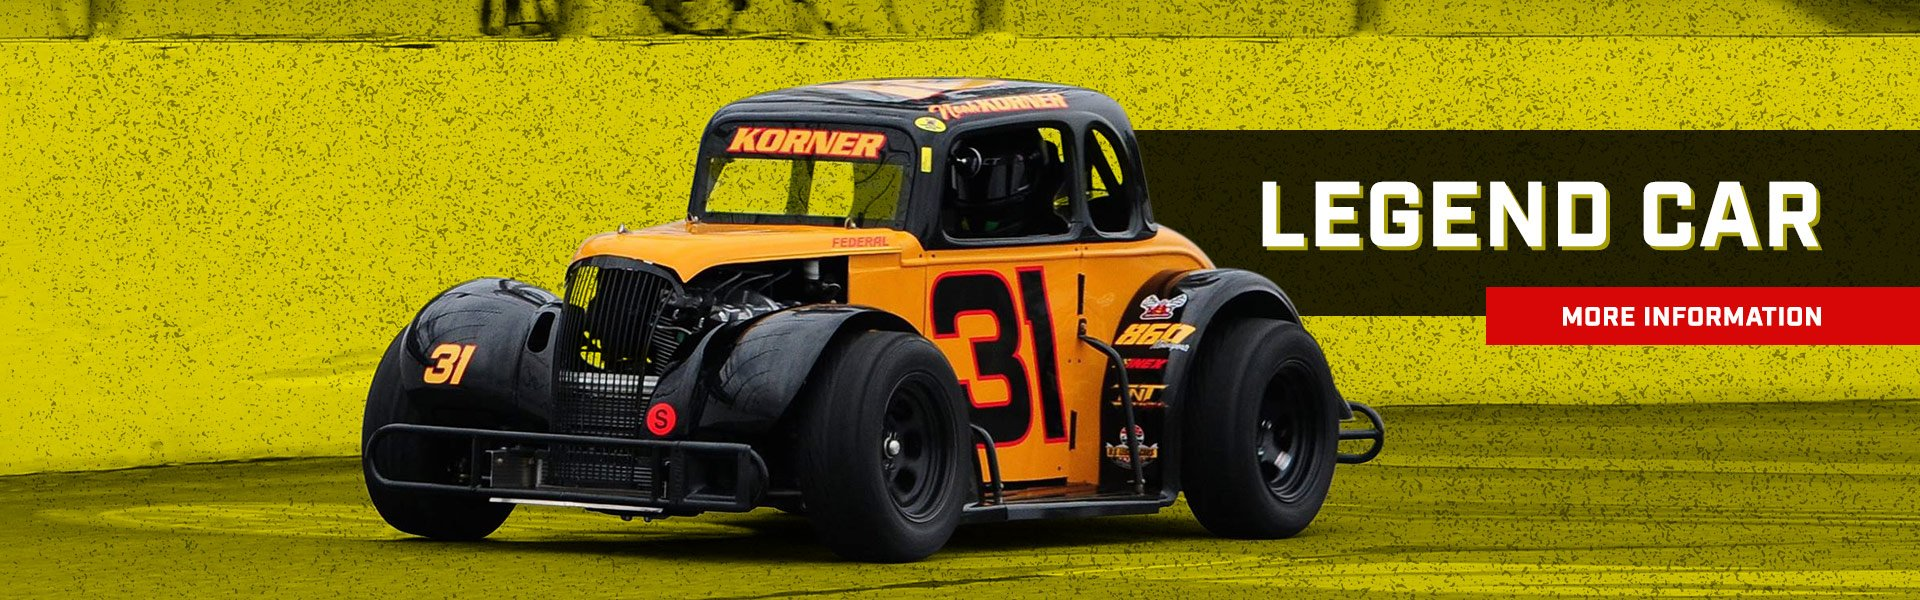 Legend Car